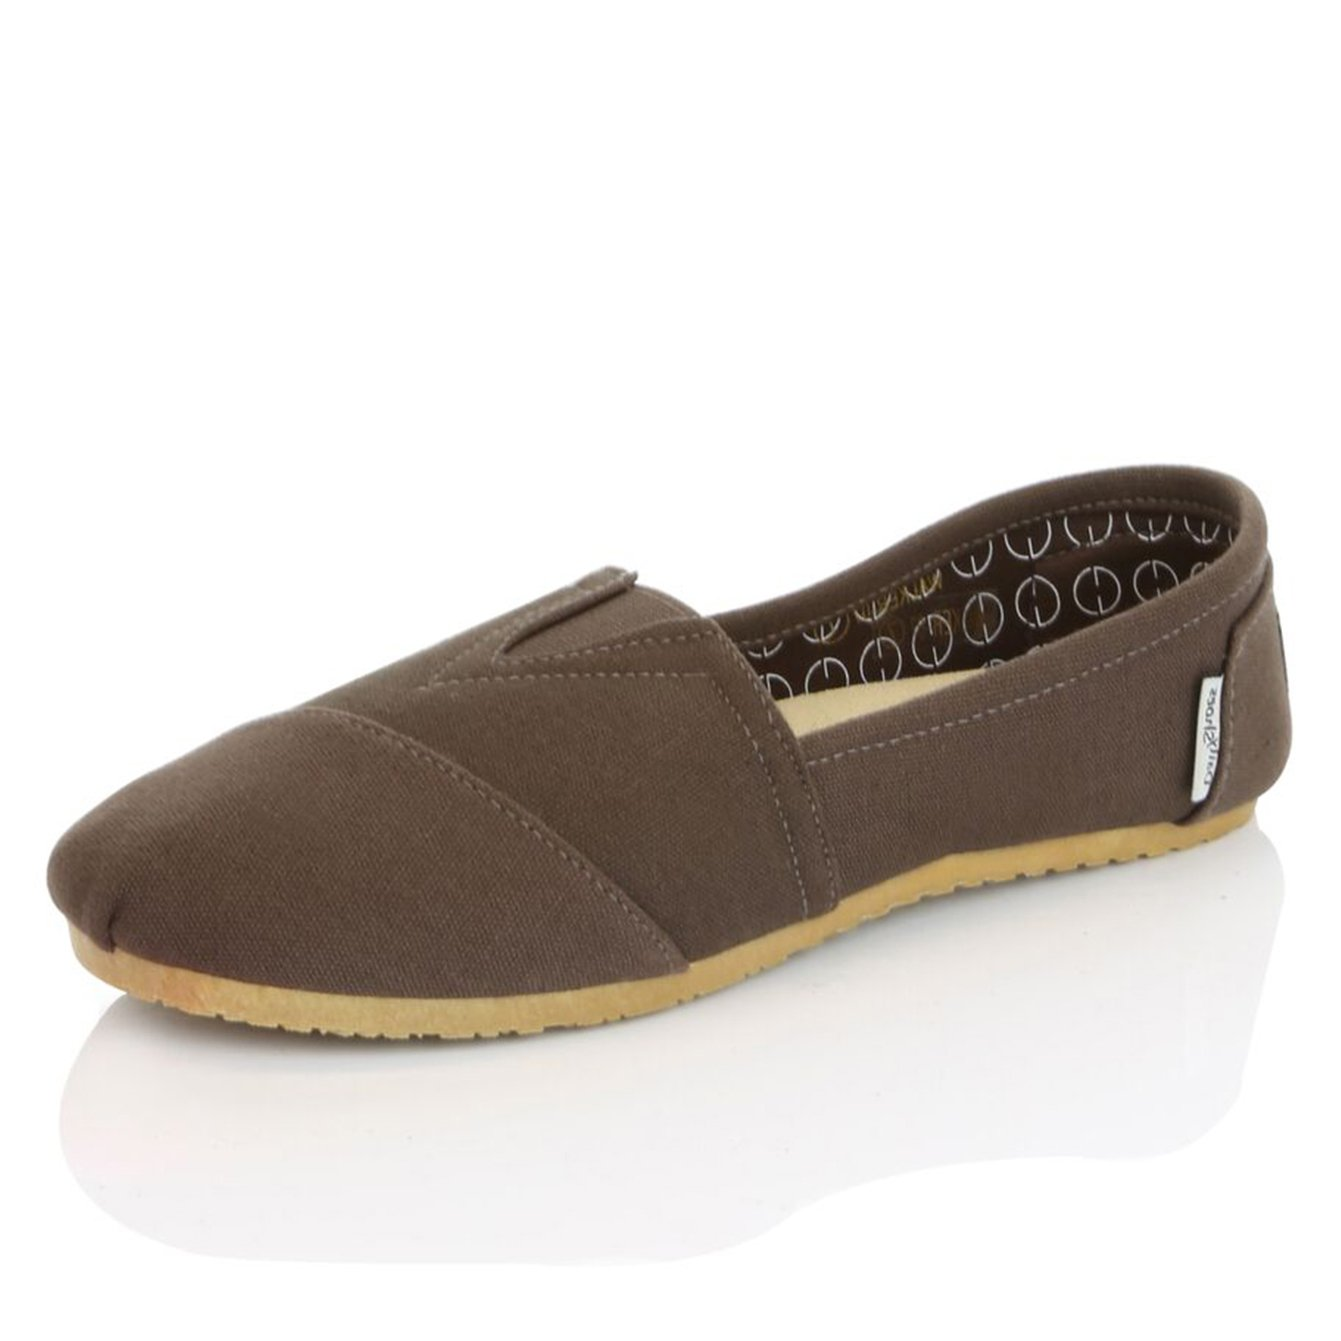 DailyShoes Women's Women Classic Flat Slip-On Comfort Loafer Sneaker Shoes with Raised Massage Surface Elastic Top Flats Shoe, Brown Linen, 8 B(M) US